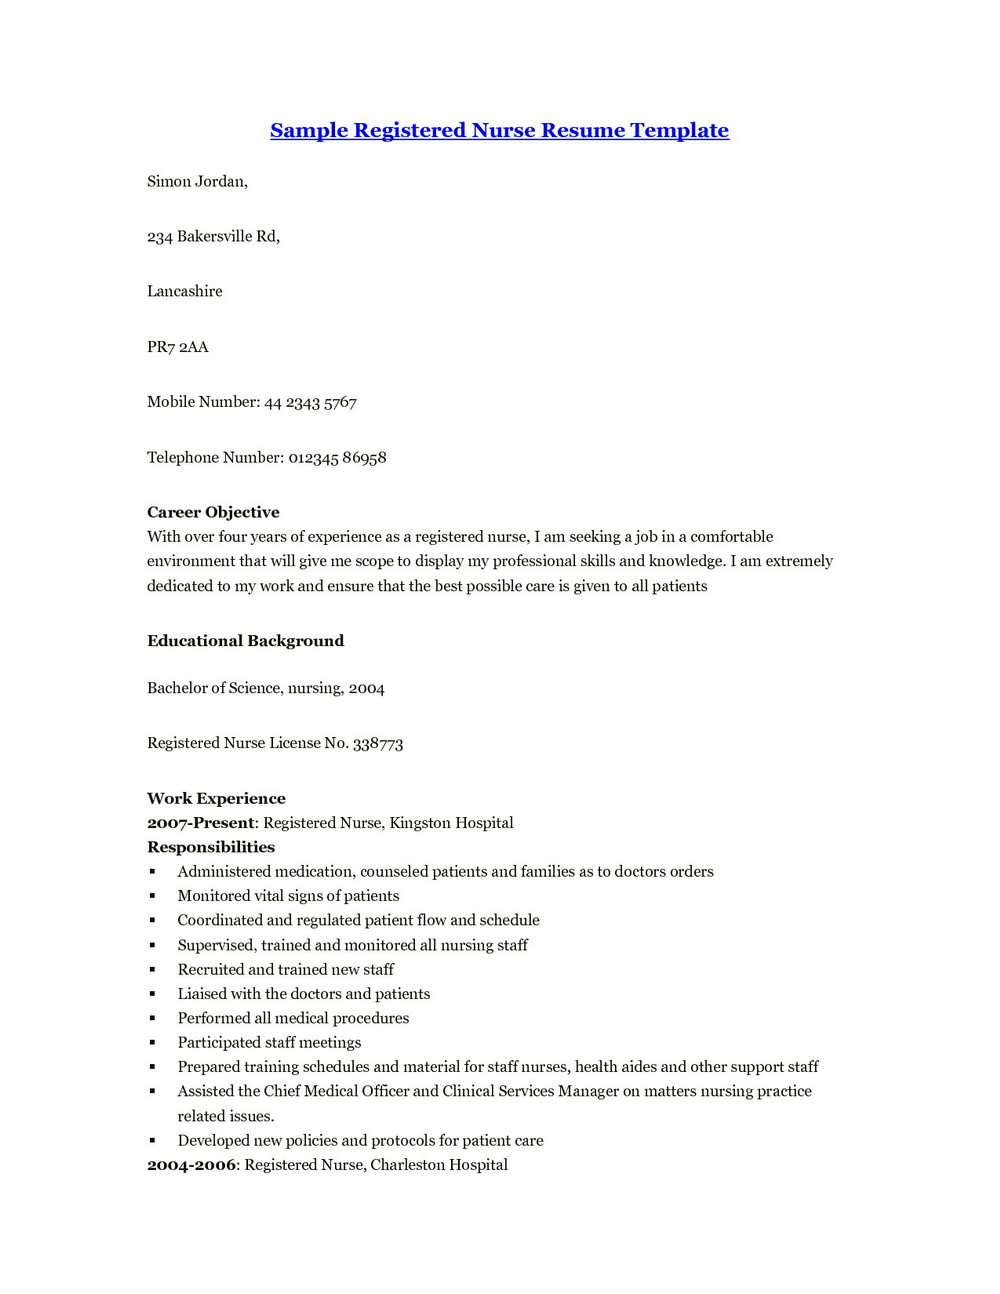 Sample Resume For Registered Nurse With Experience